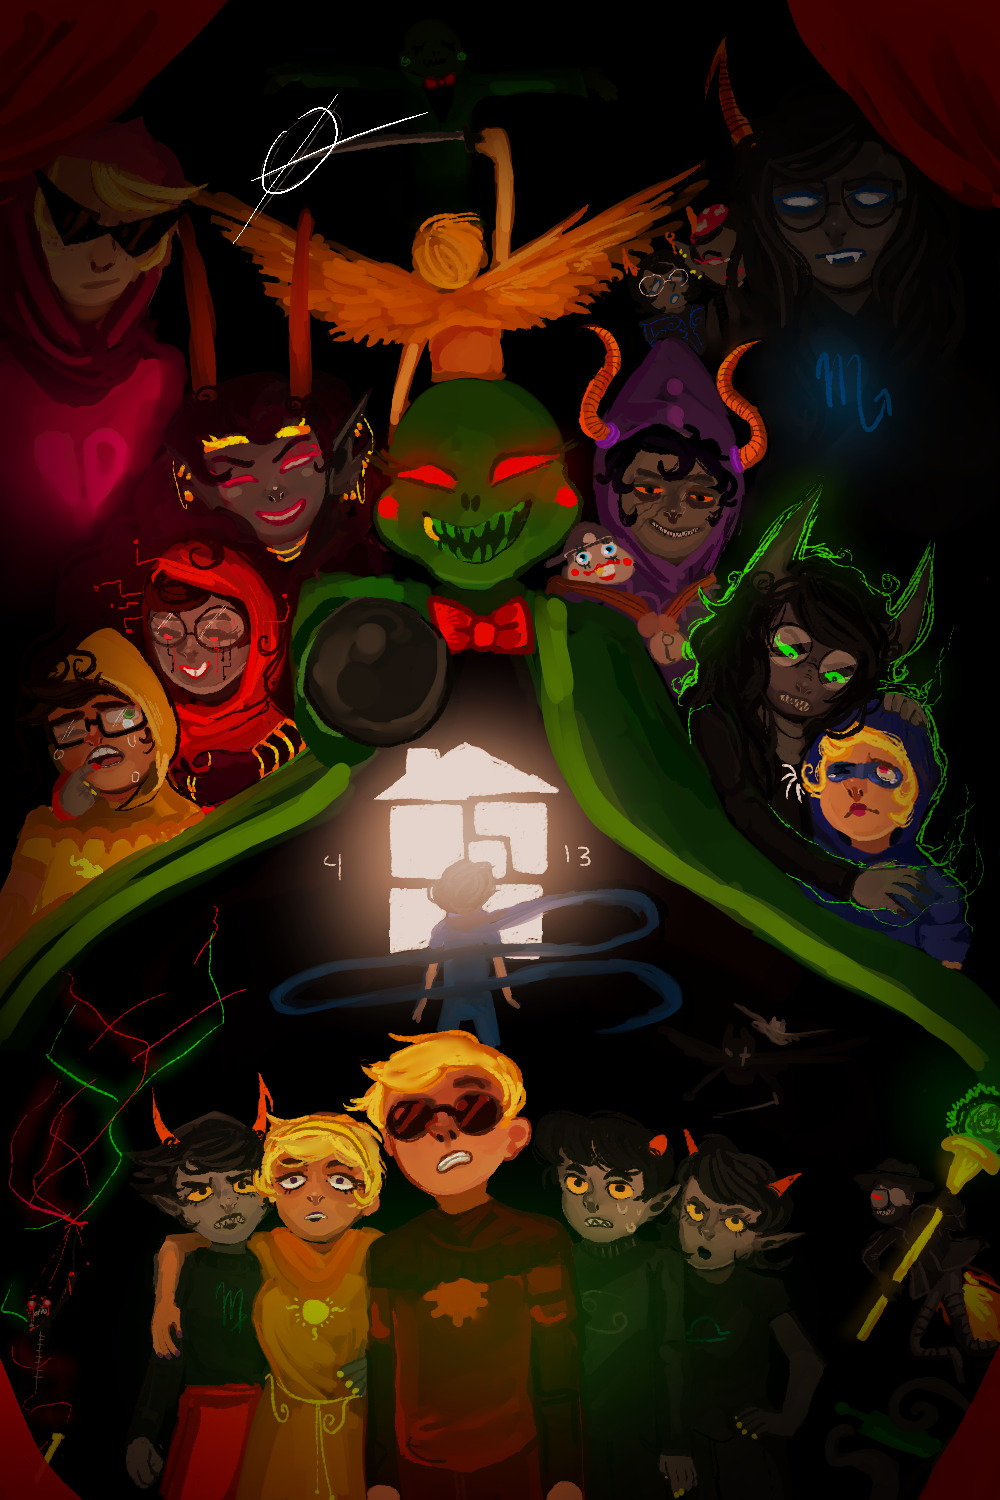 [Image - 529768] | Homestuck | Know Your Meme